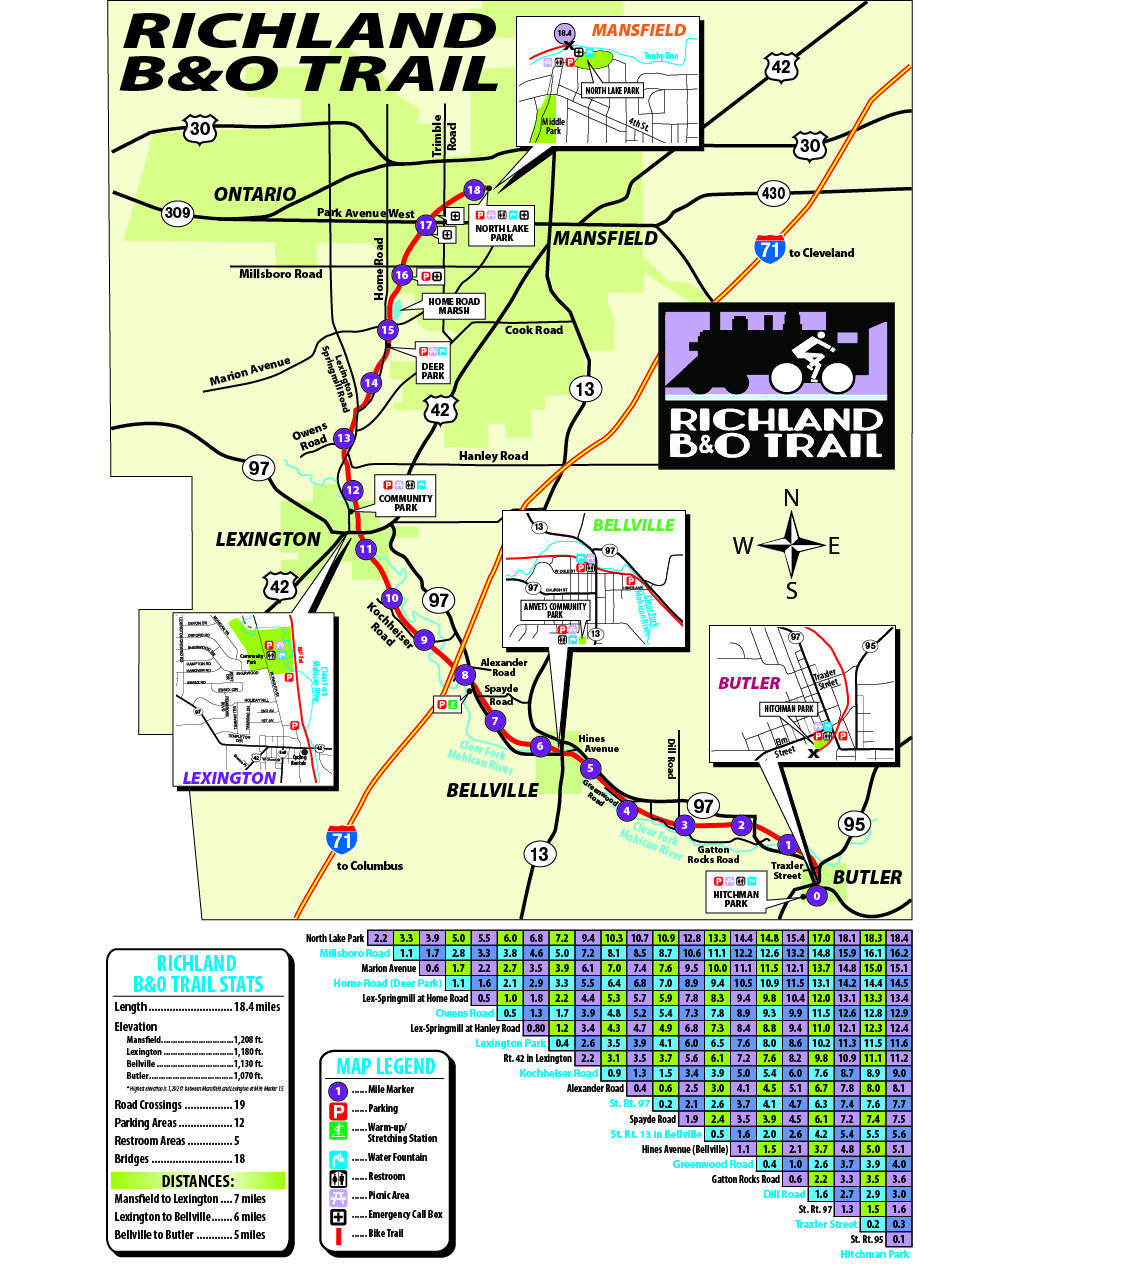 Richland B&O Trail Map